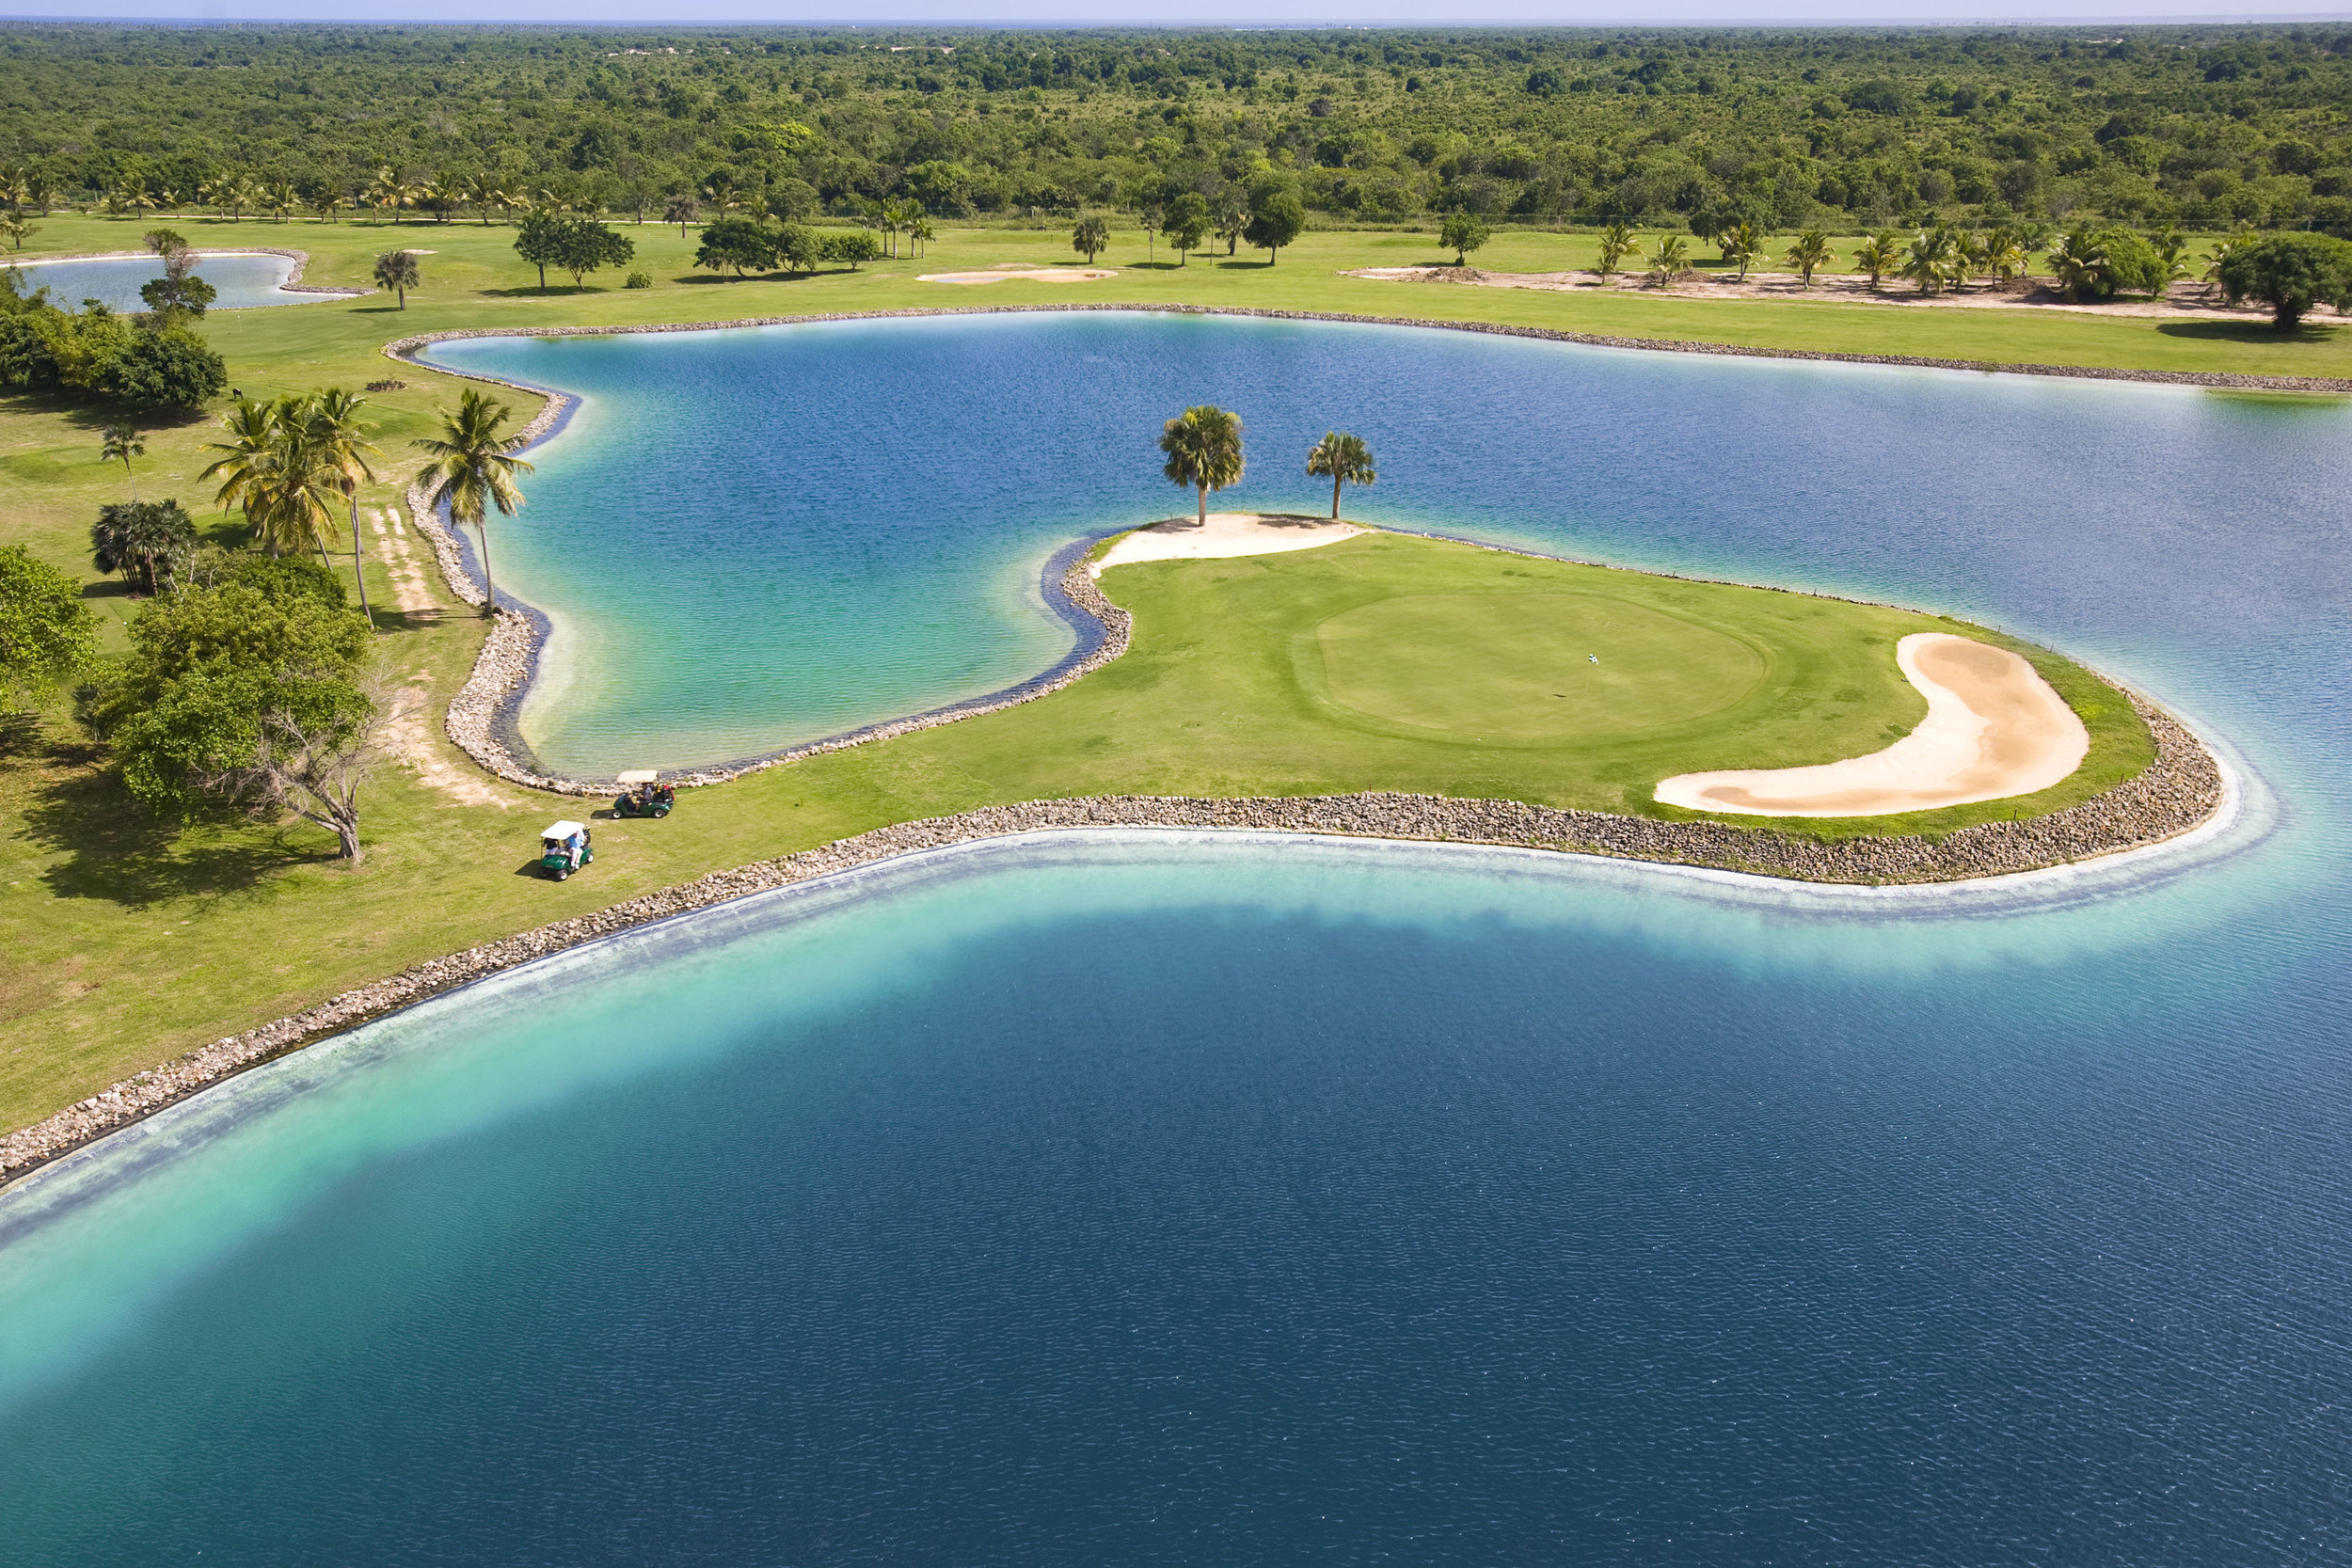 Caribe_Golf_Club.jpg